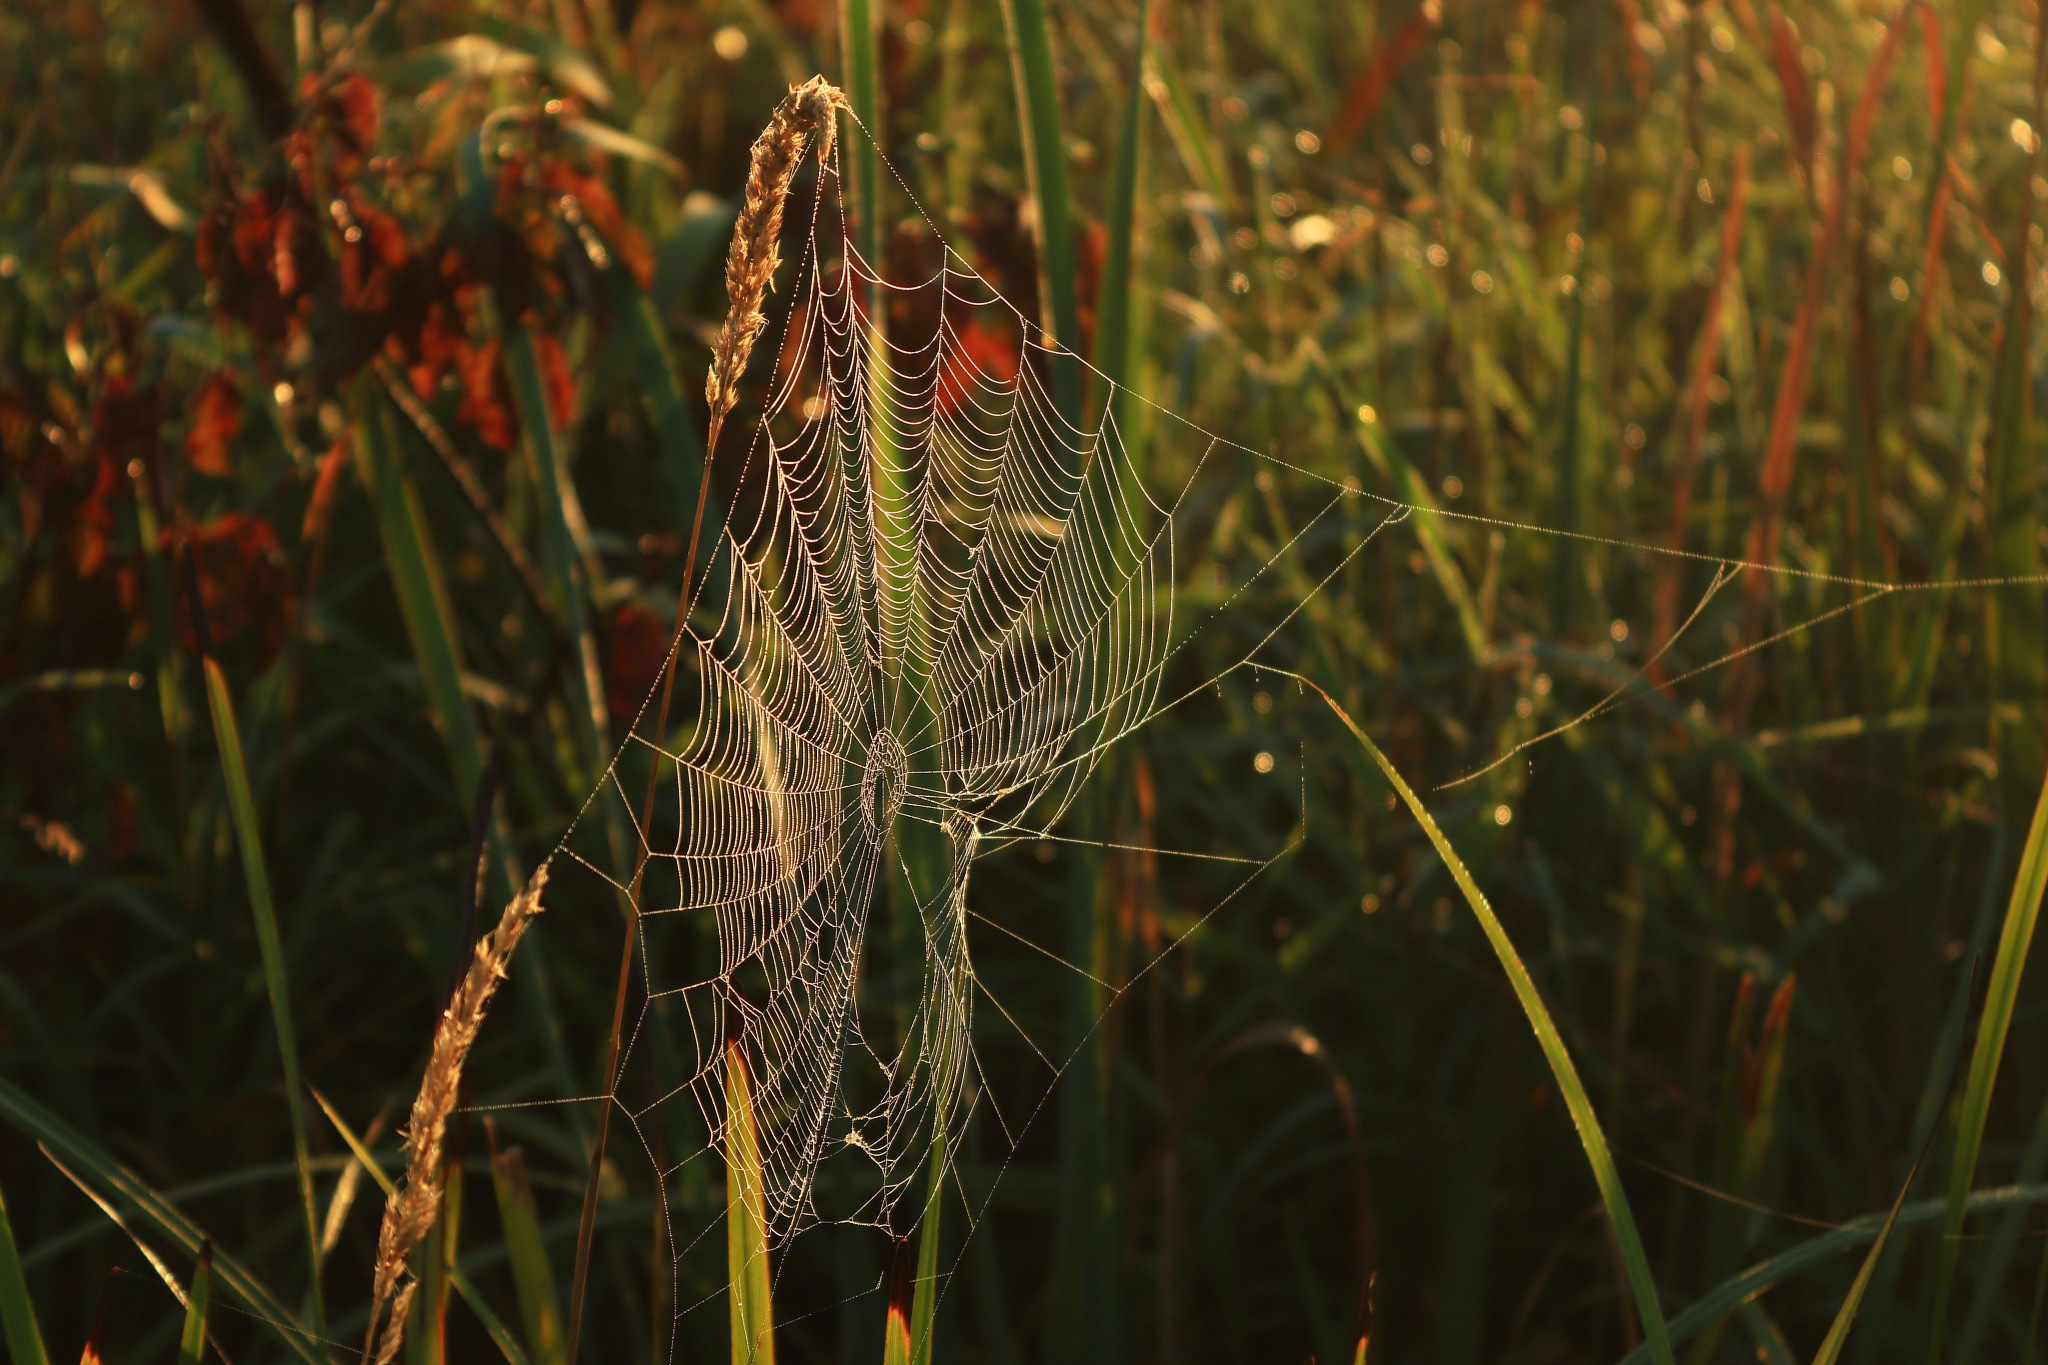 Morning Web by Jeff Pudlinski